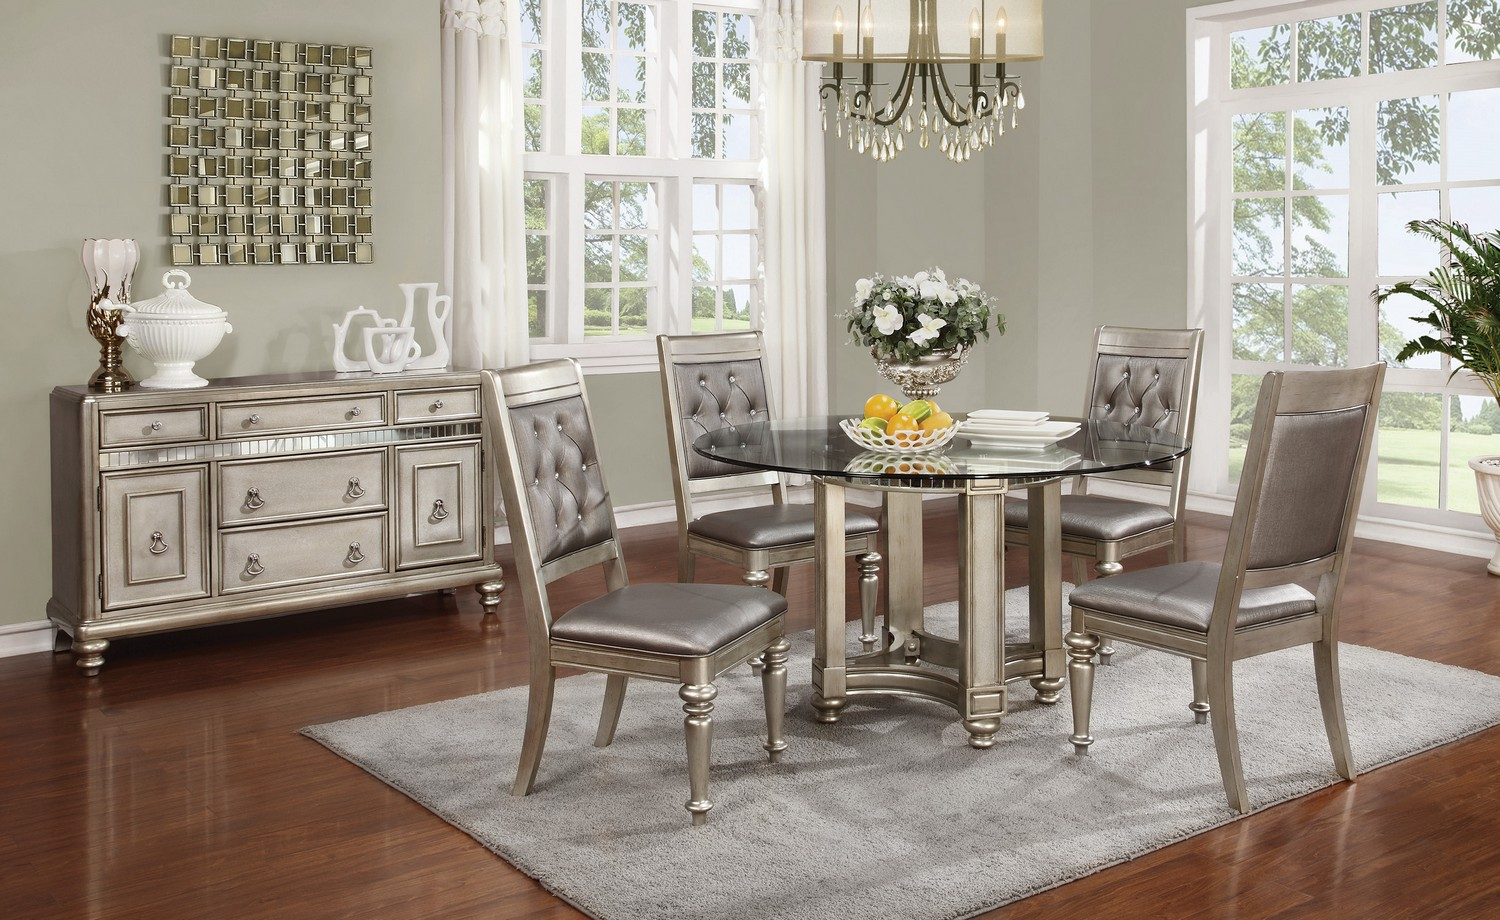 Coaster Danette Round Glass Top Dining Set - Metallic Platinum